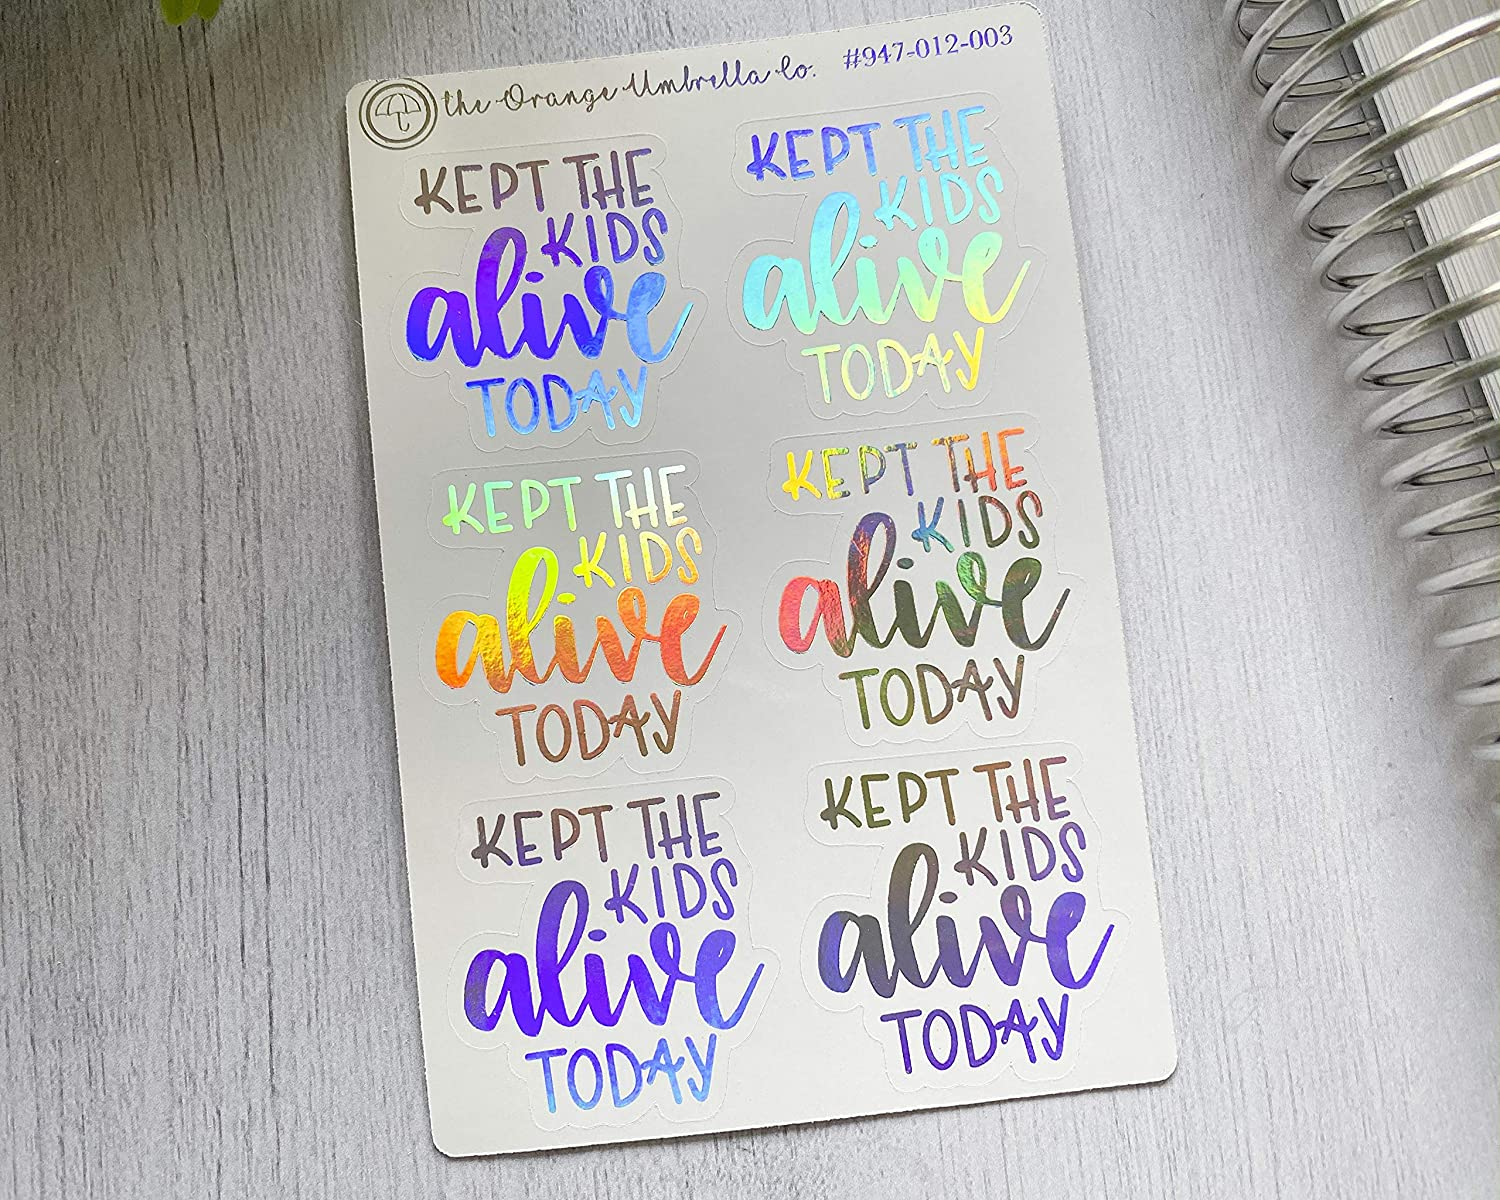 Kept The Kids Alive Today Funny Planner Stickers Holo Color Foil Stickers #947-012-003-F-Holo Motivational Stickers